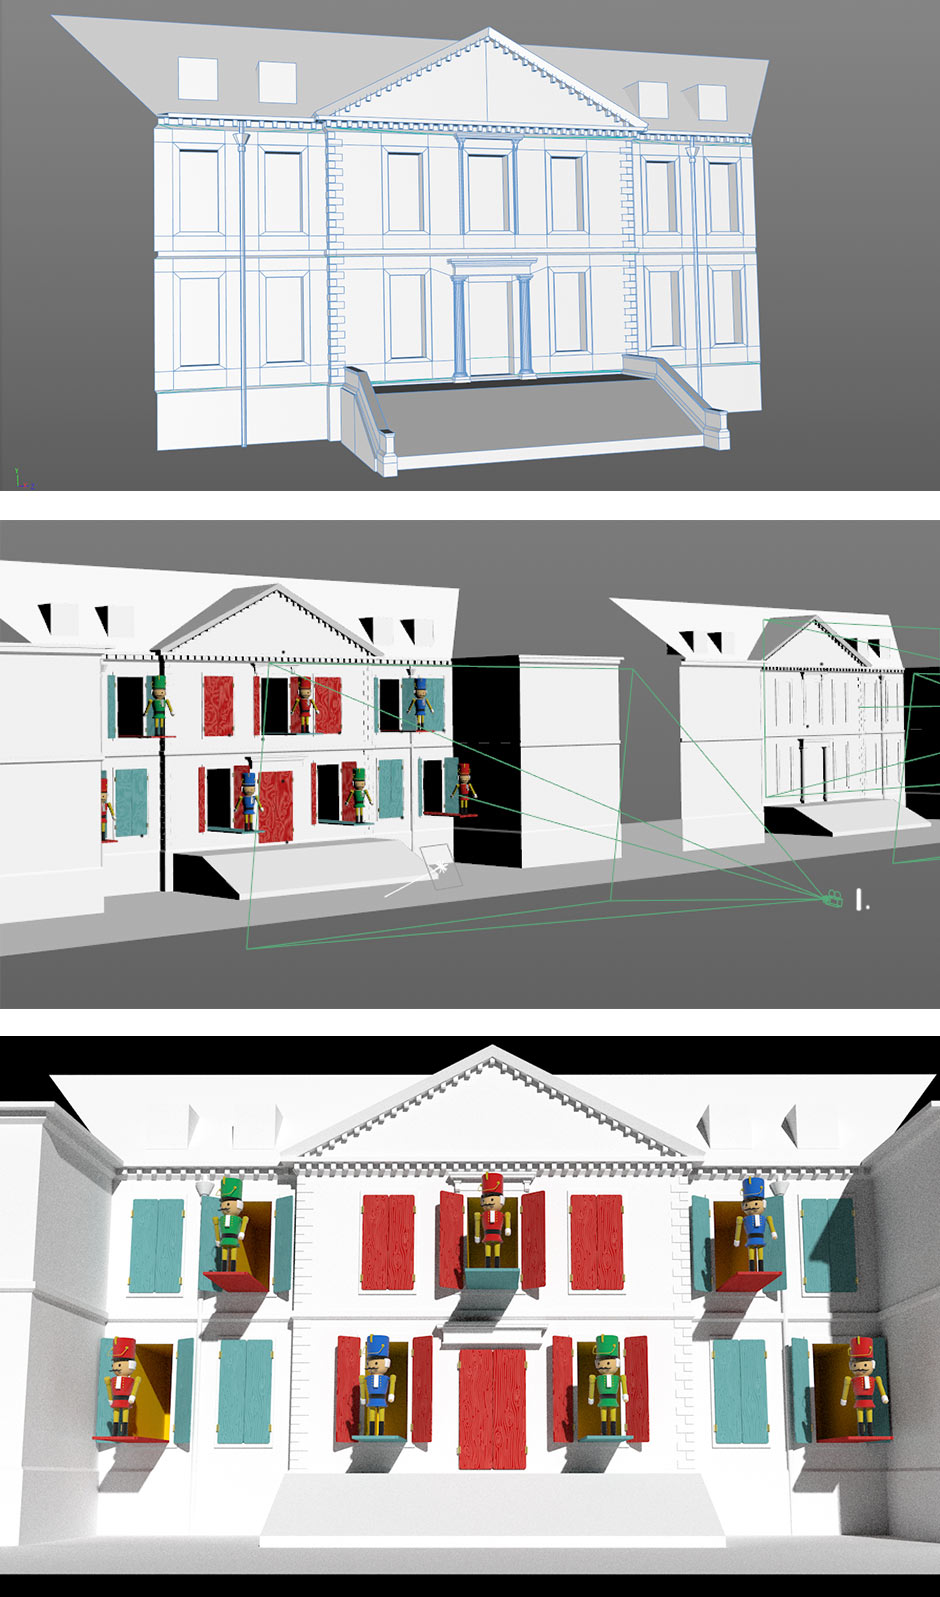 Projection mapping concepts for the National Trust property, completed by Katapult